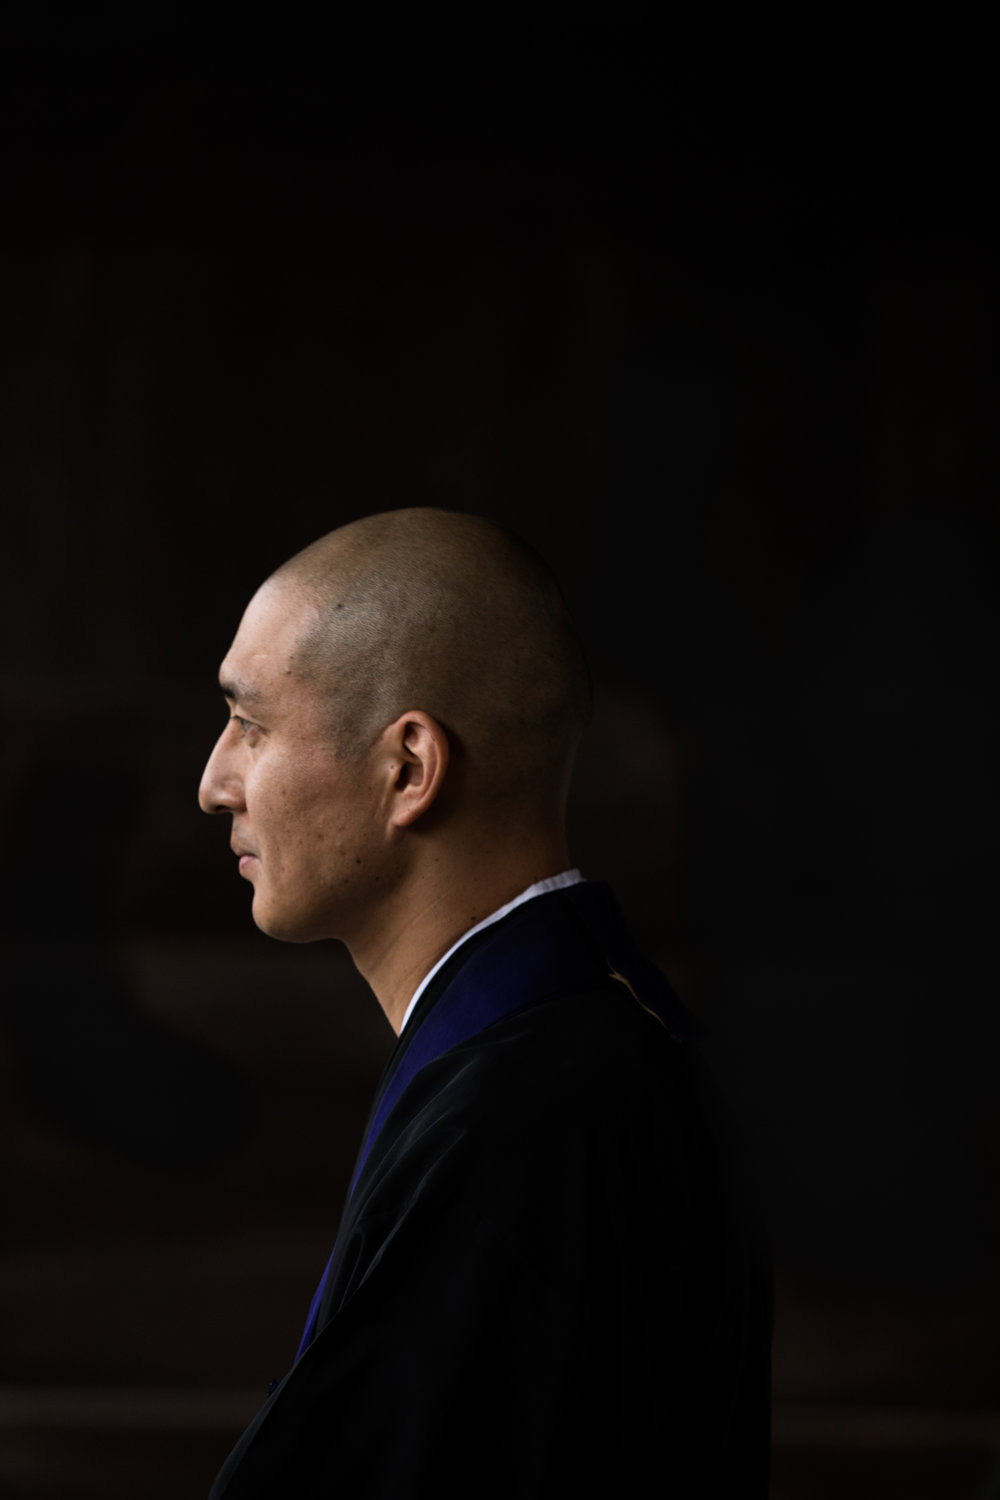 Ten, Buddhist monk- Kyoto, Japan